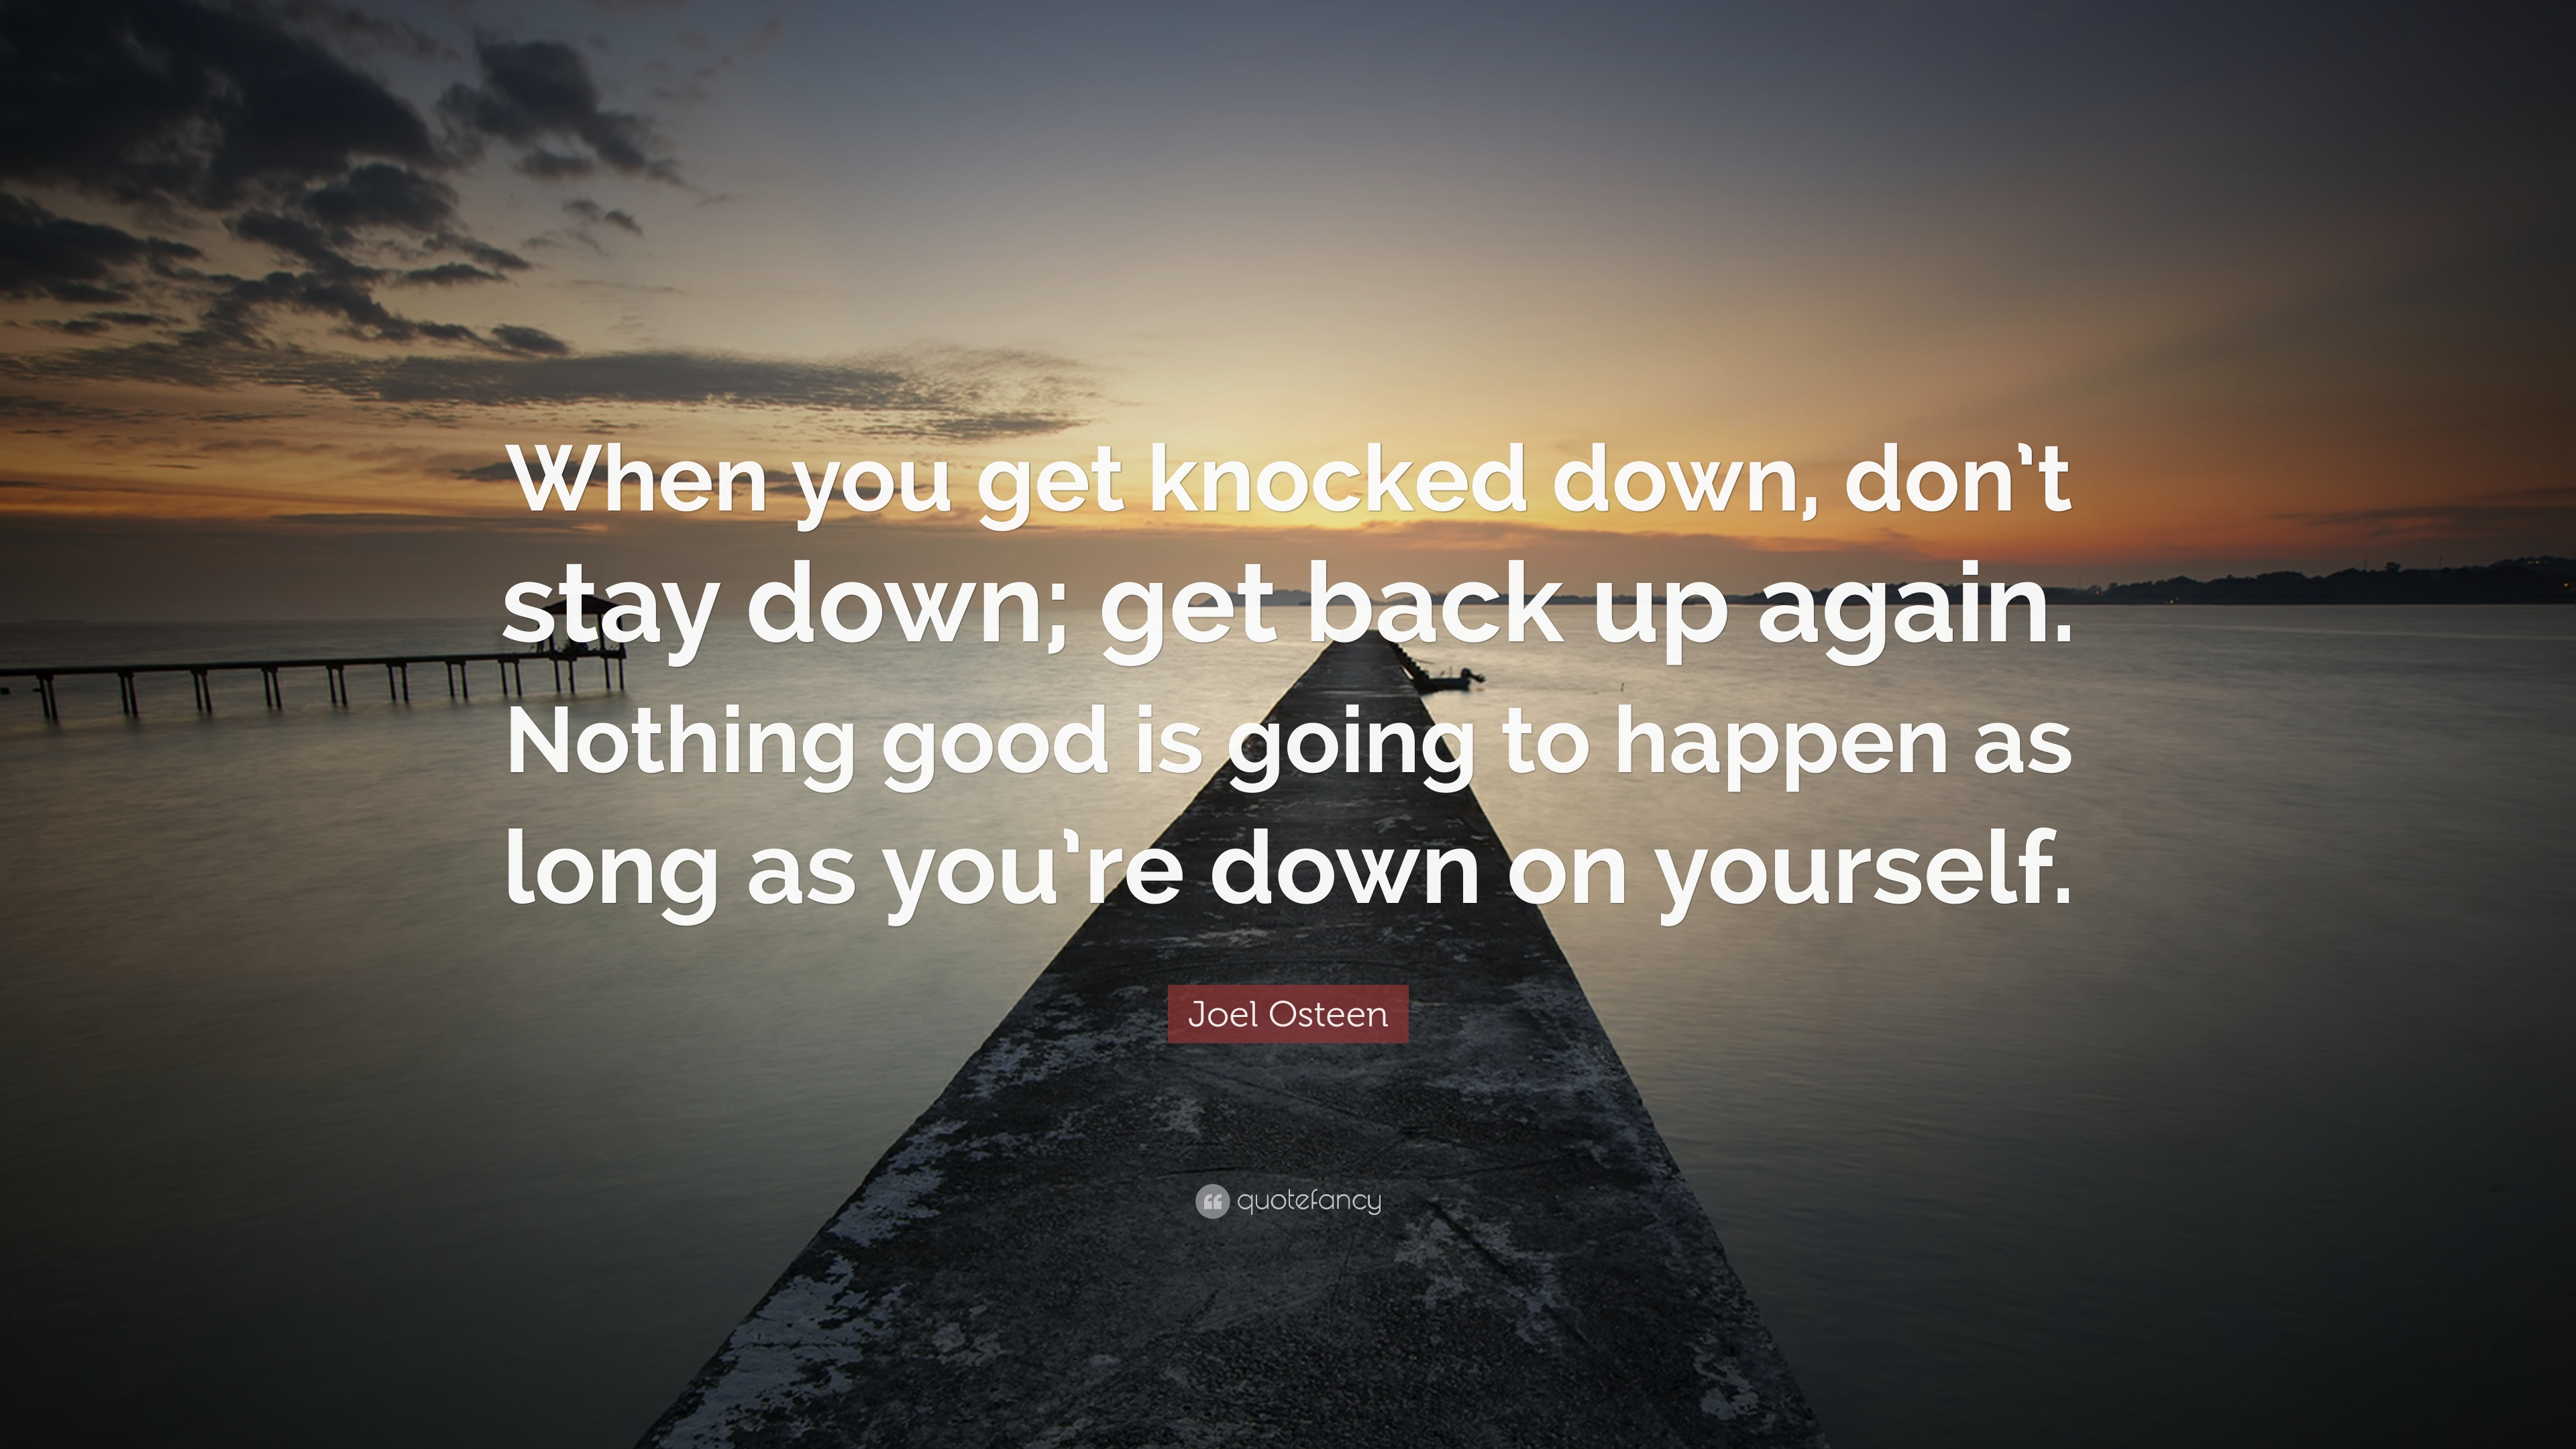 Joel Osteen Quote When You Get Knocked Down Dont Stay Down Get